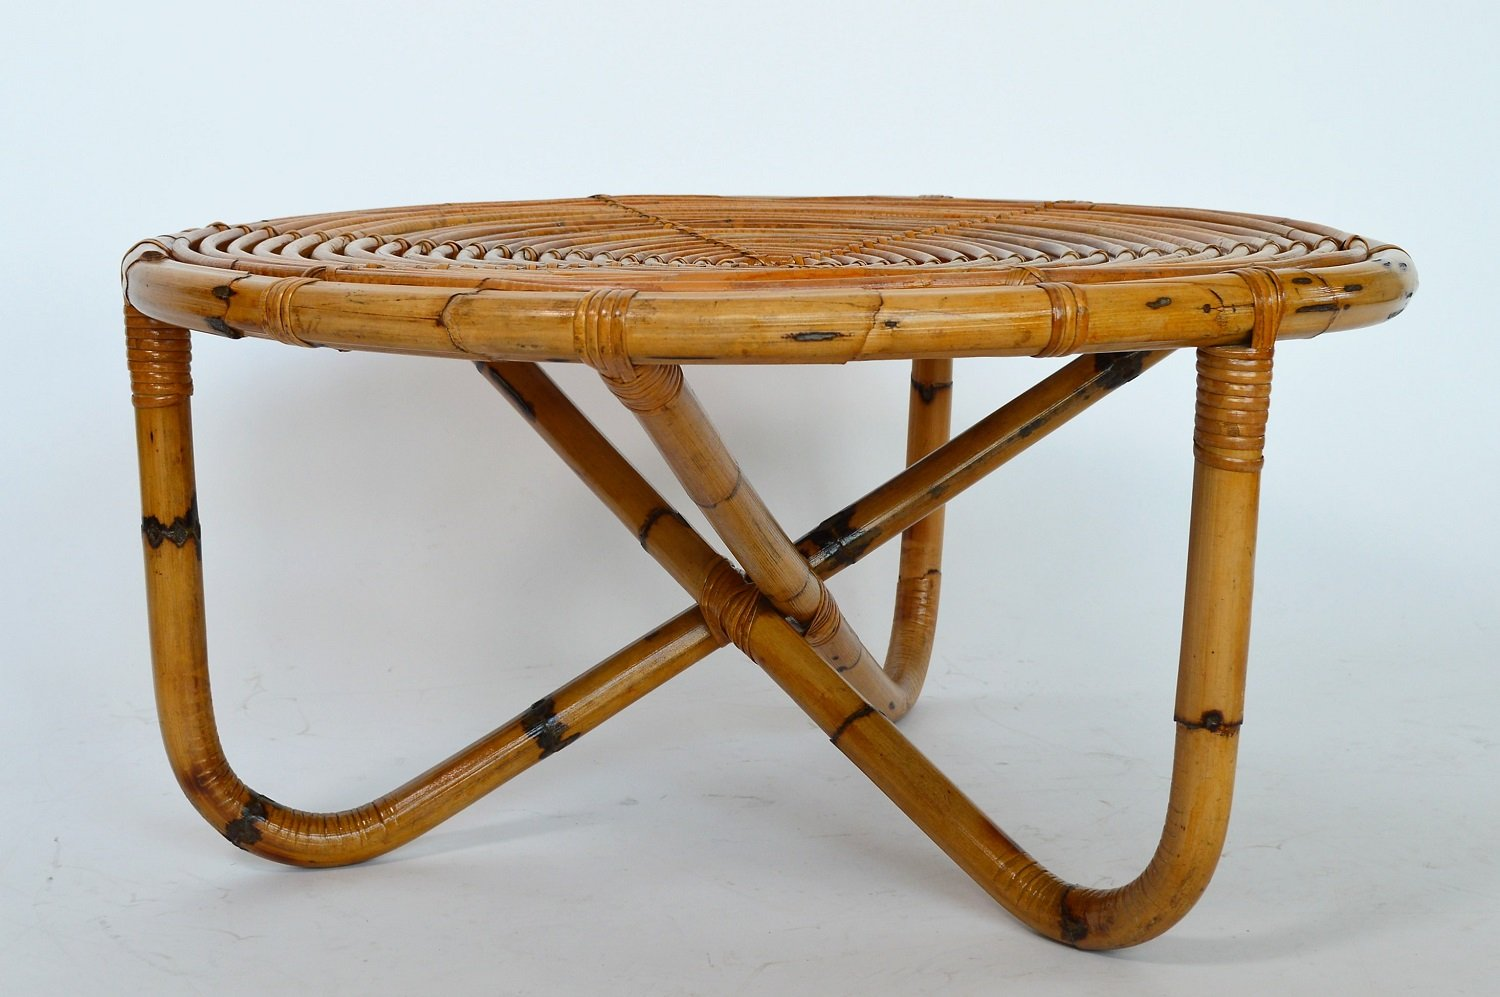 Bamboo coffee table or terrace s for sale at pamono